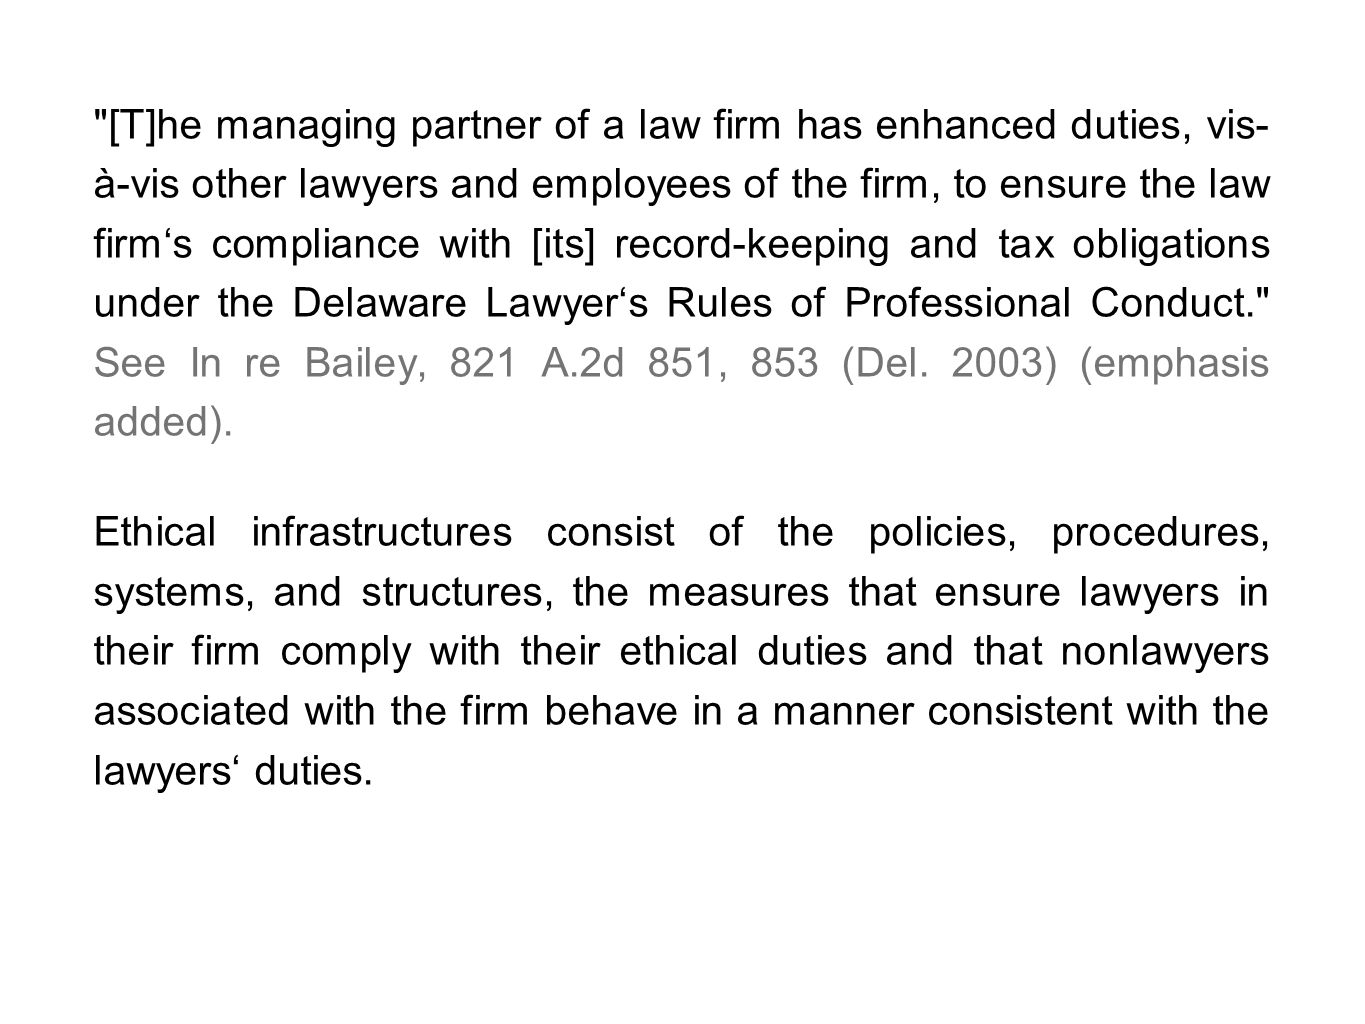 [T]he managing partner of a law firm has enhanced duties, vis- à-vis other lawyers and employees of the firm, to ensure the law firms compliance with [its] record-keeping and tax obligations under the Delaware Lawyers Rules of Professional Conduct. See In re Bailey, 821 A.2d 851, 853 (Del.